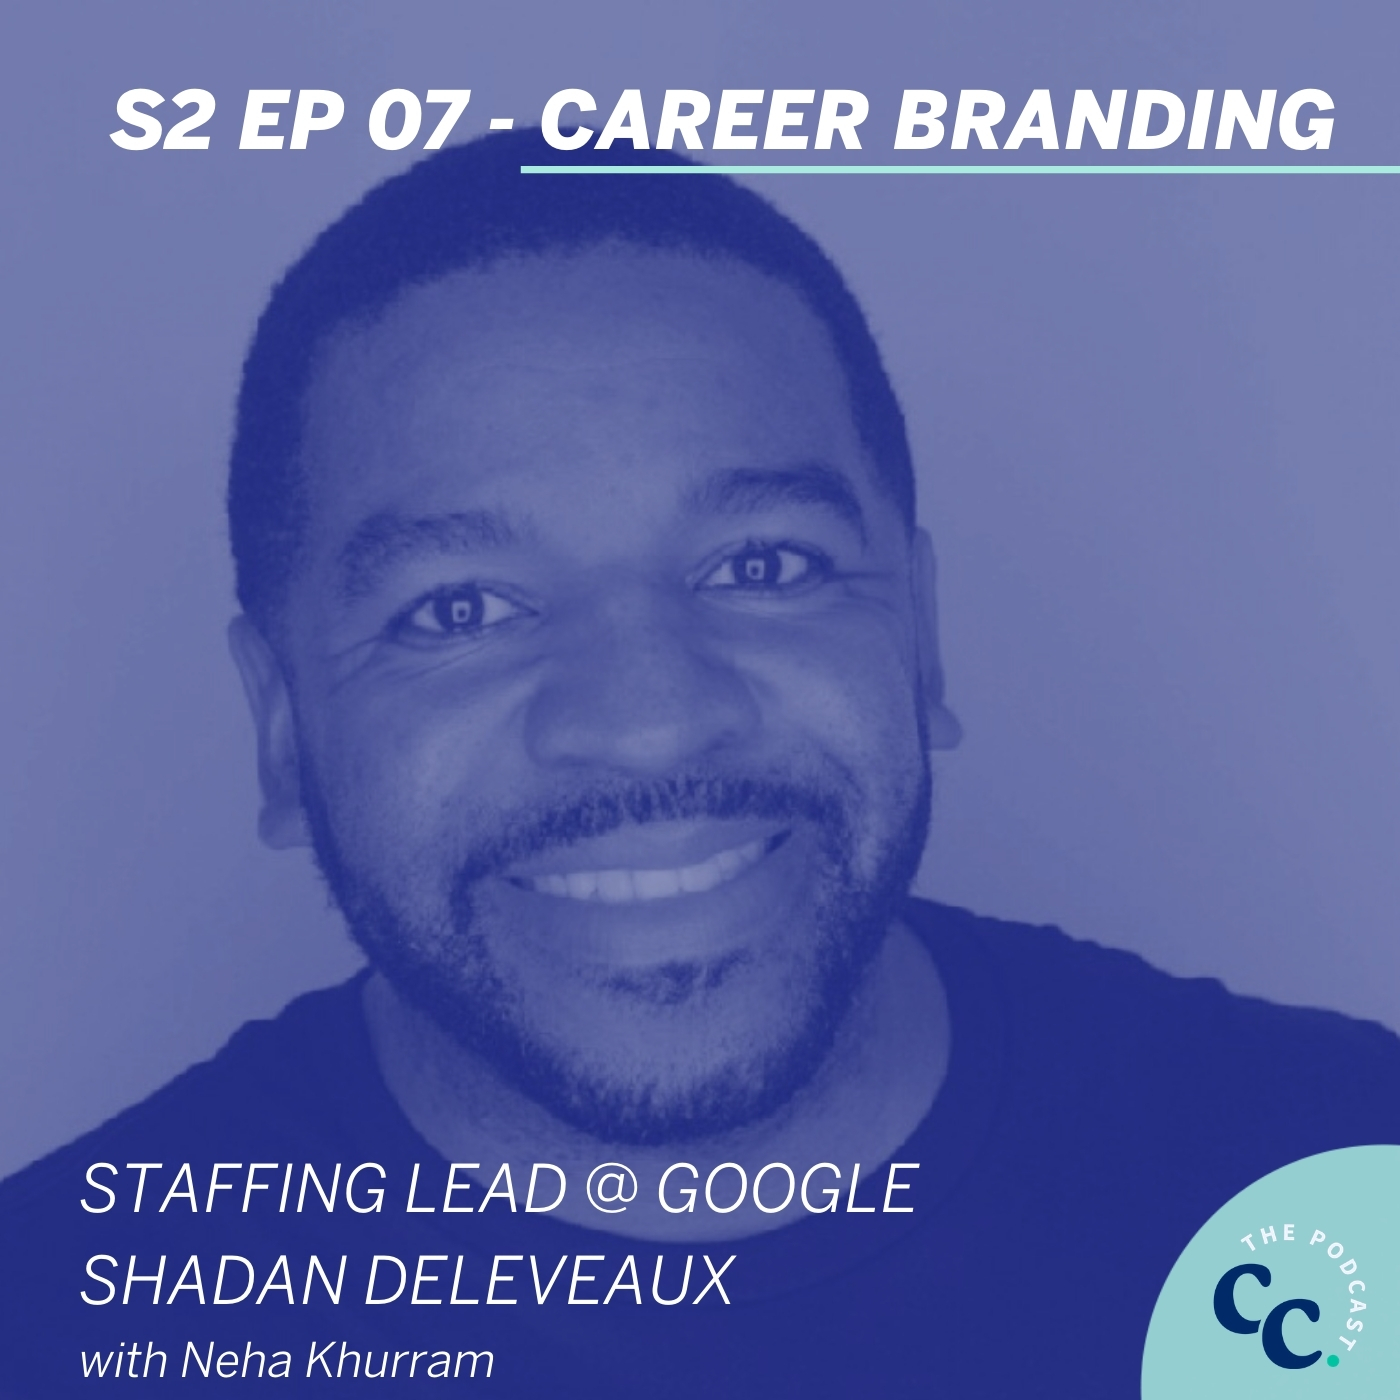 Career Branding with Google Staffing Lead, Shadan Deleveaux